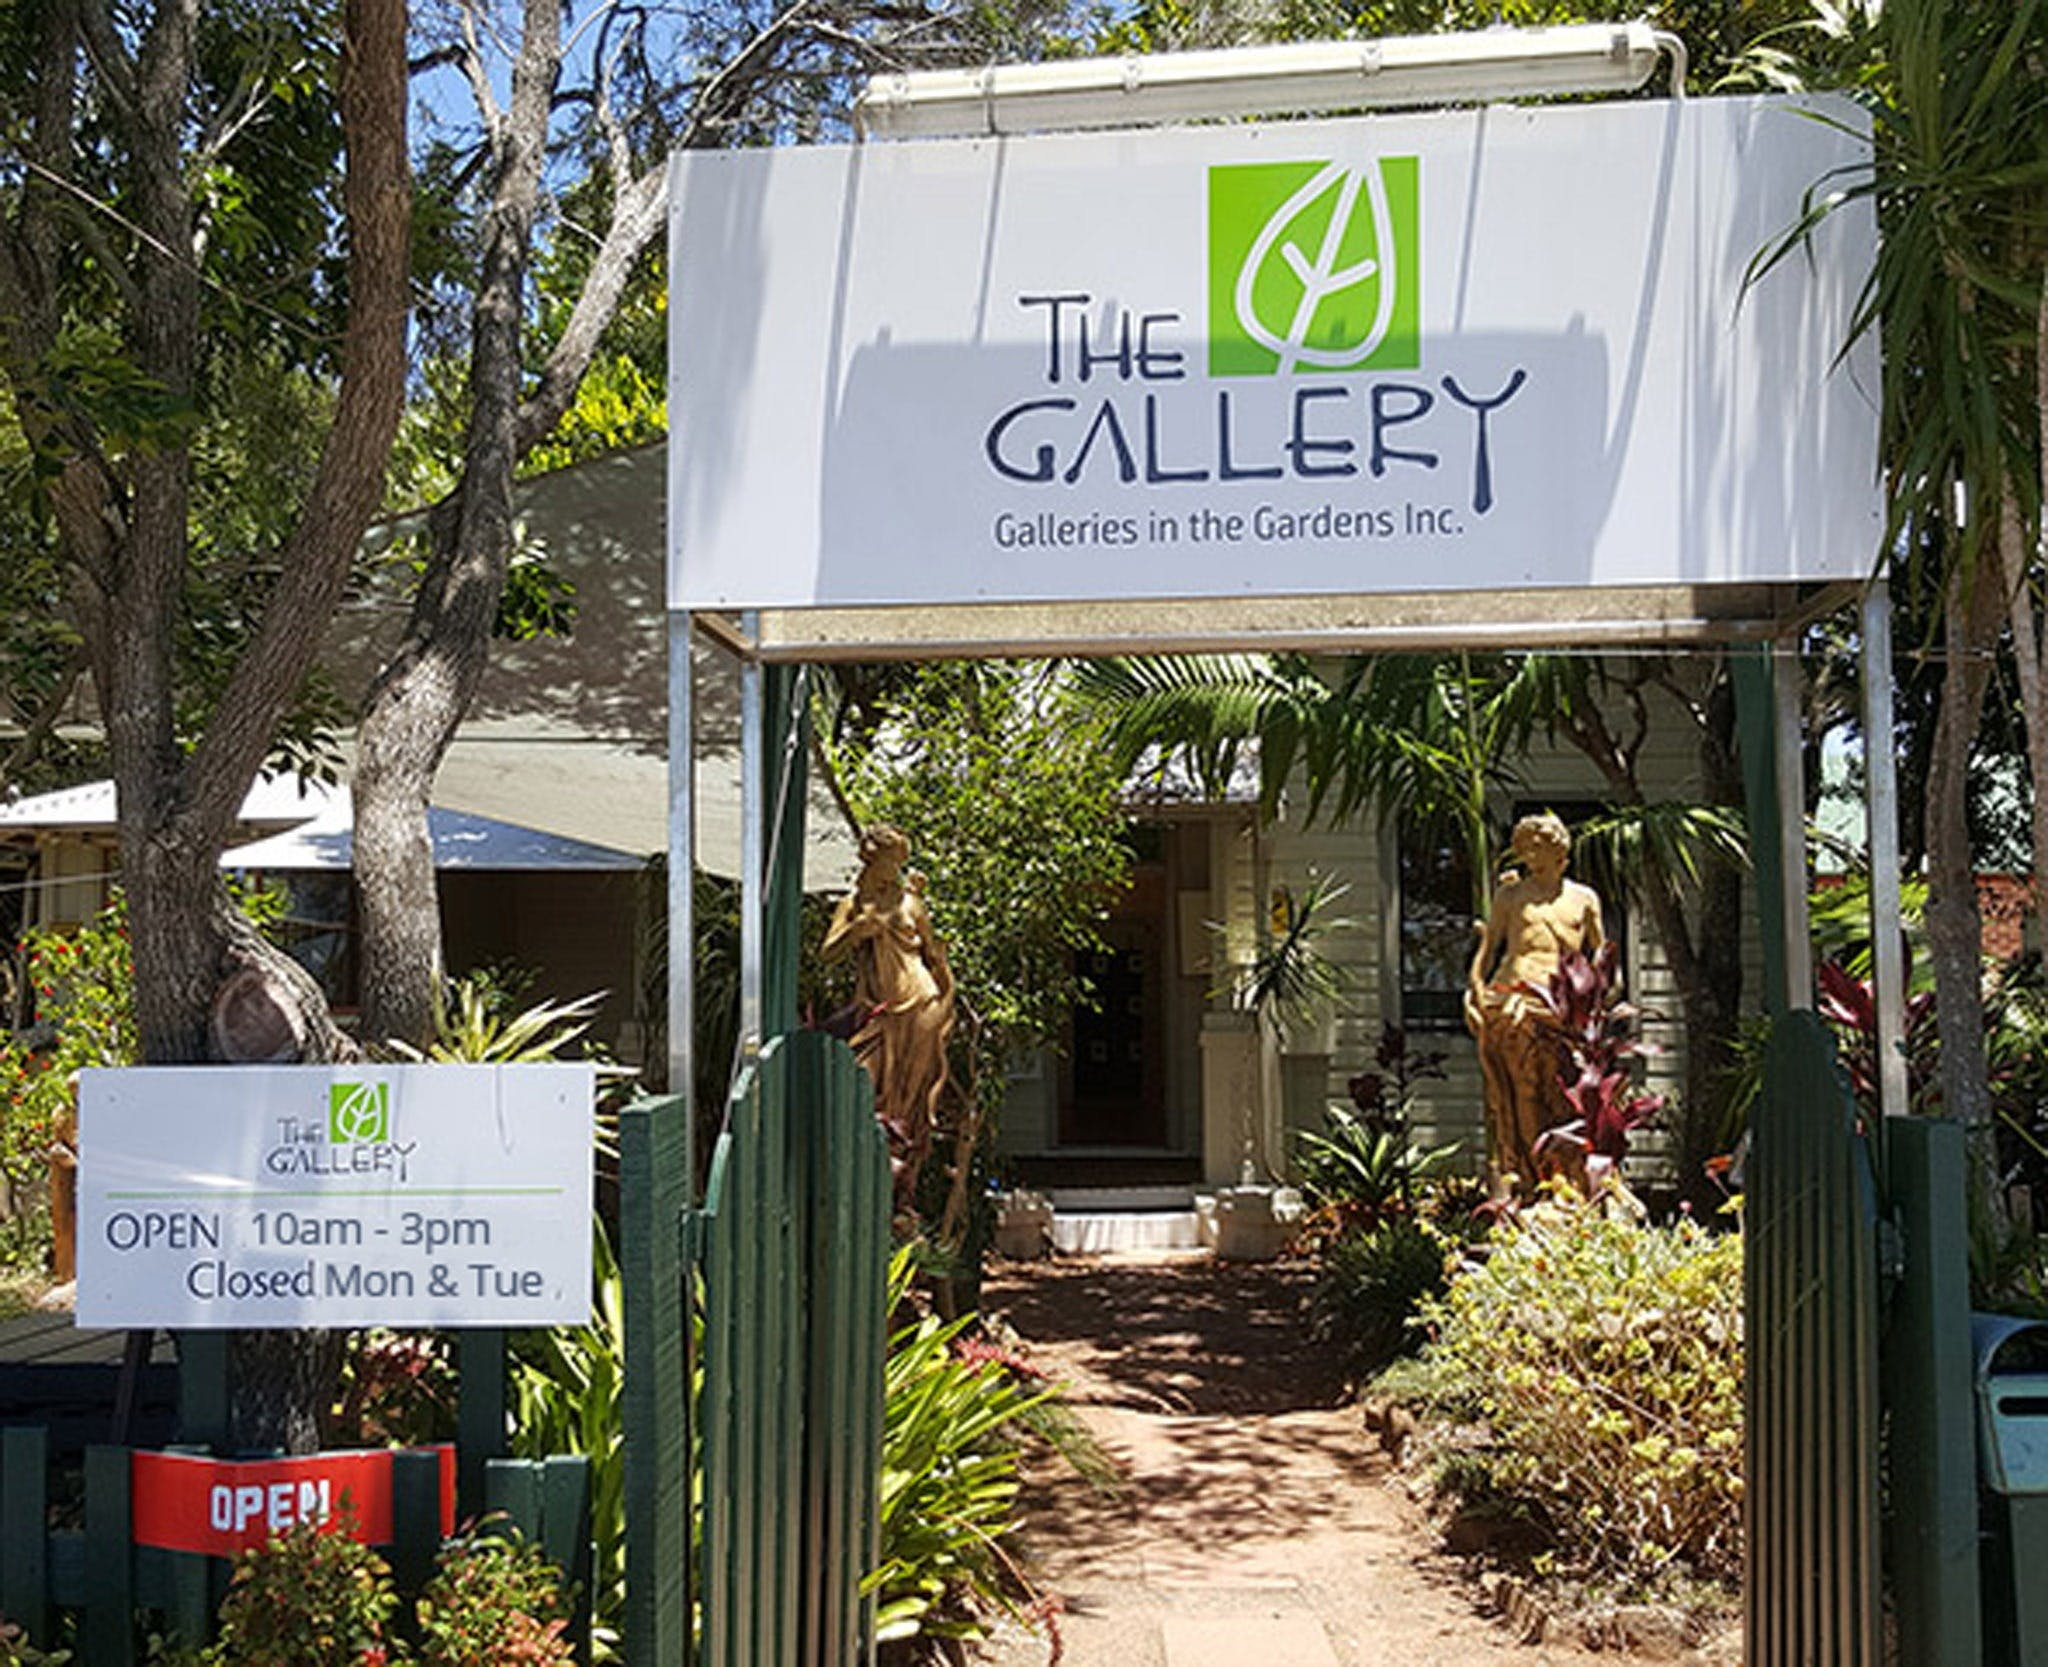 The Gallery - Australia Accommodation